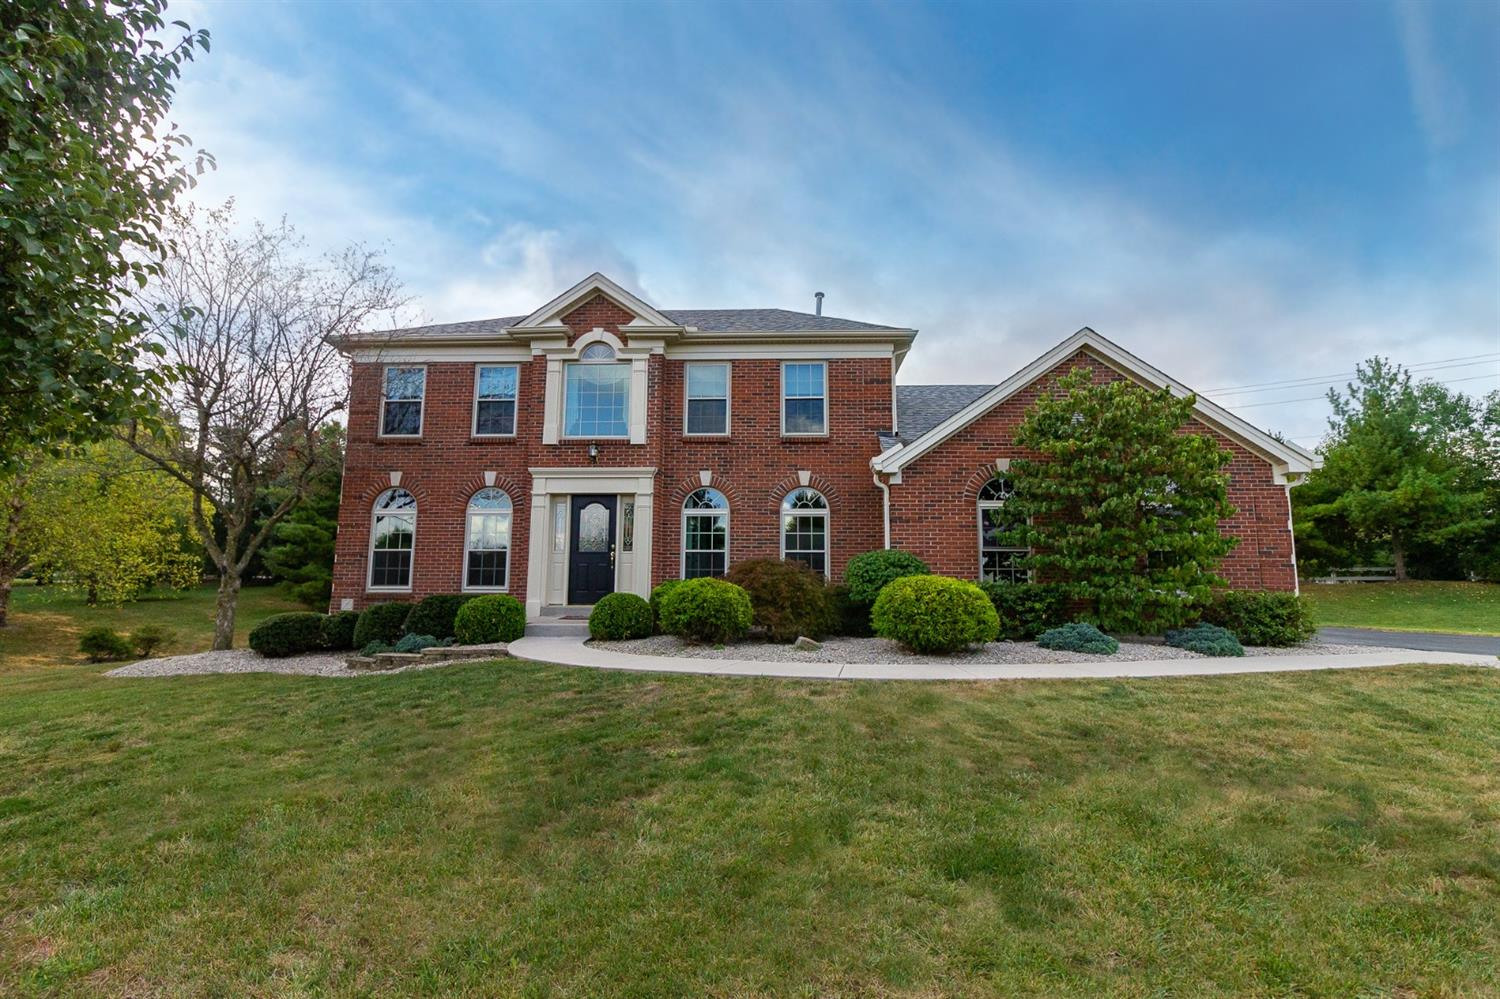 Photo of 4747 Flagstone Drive, Mason, OH 45040